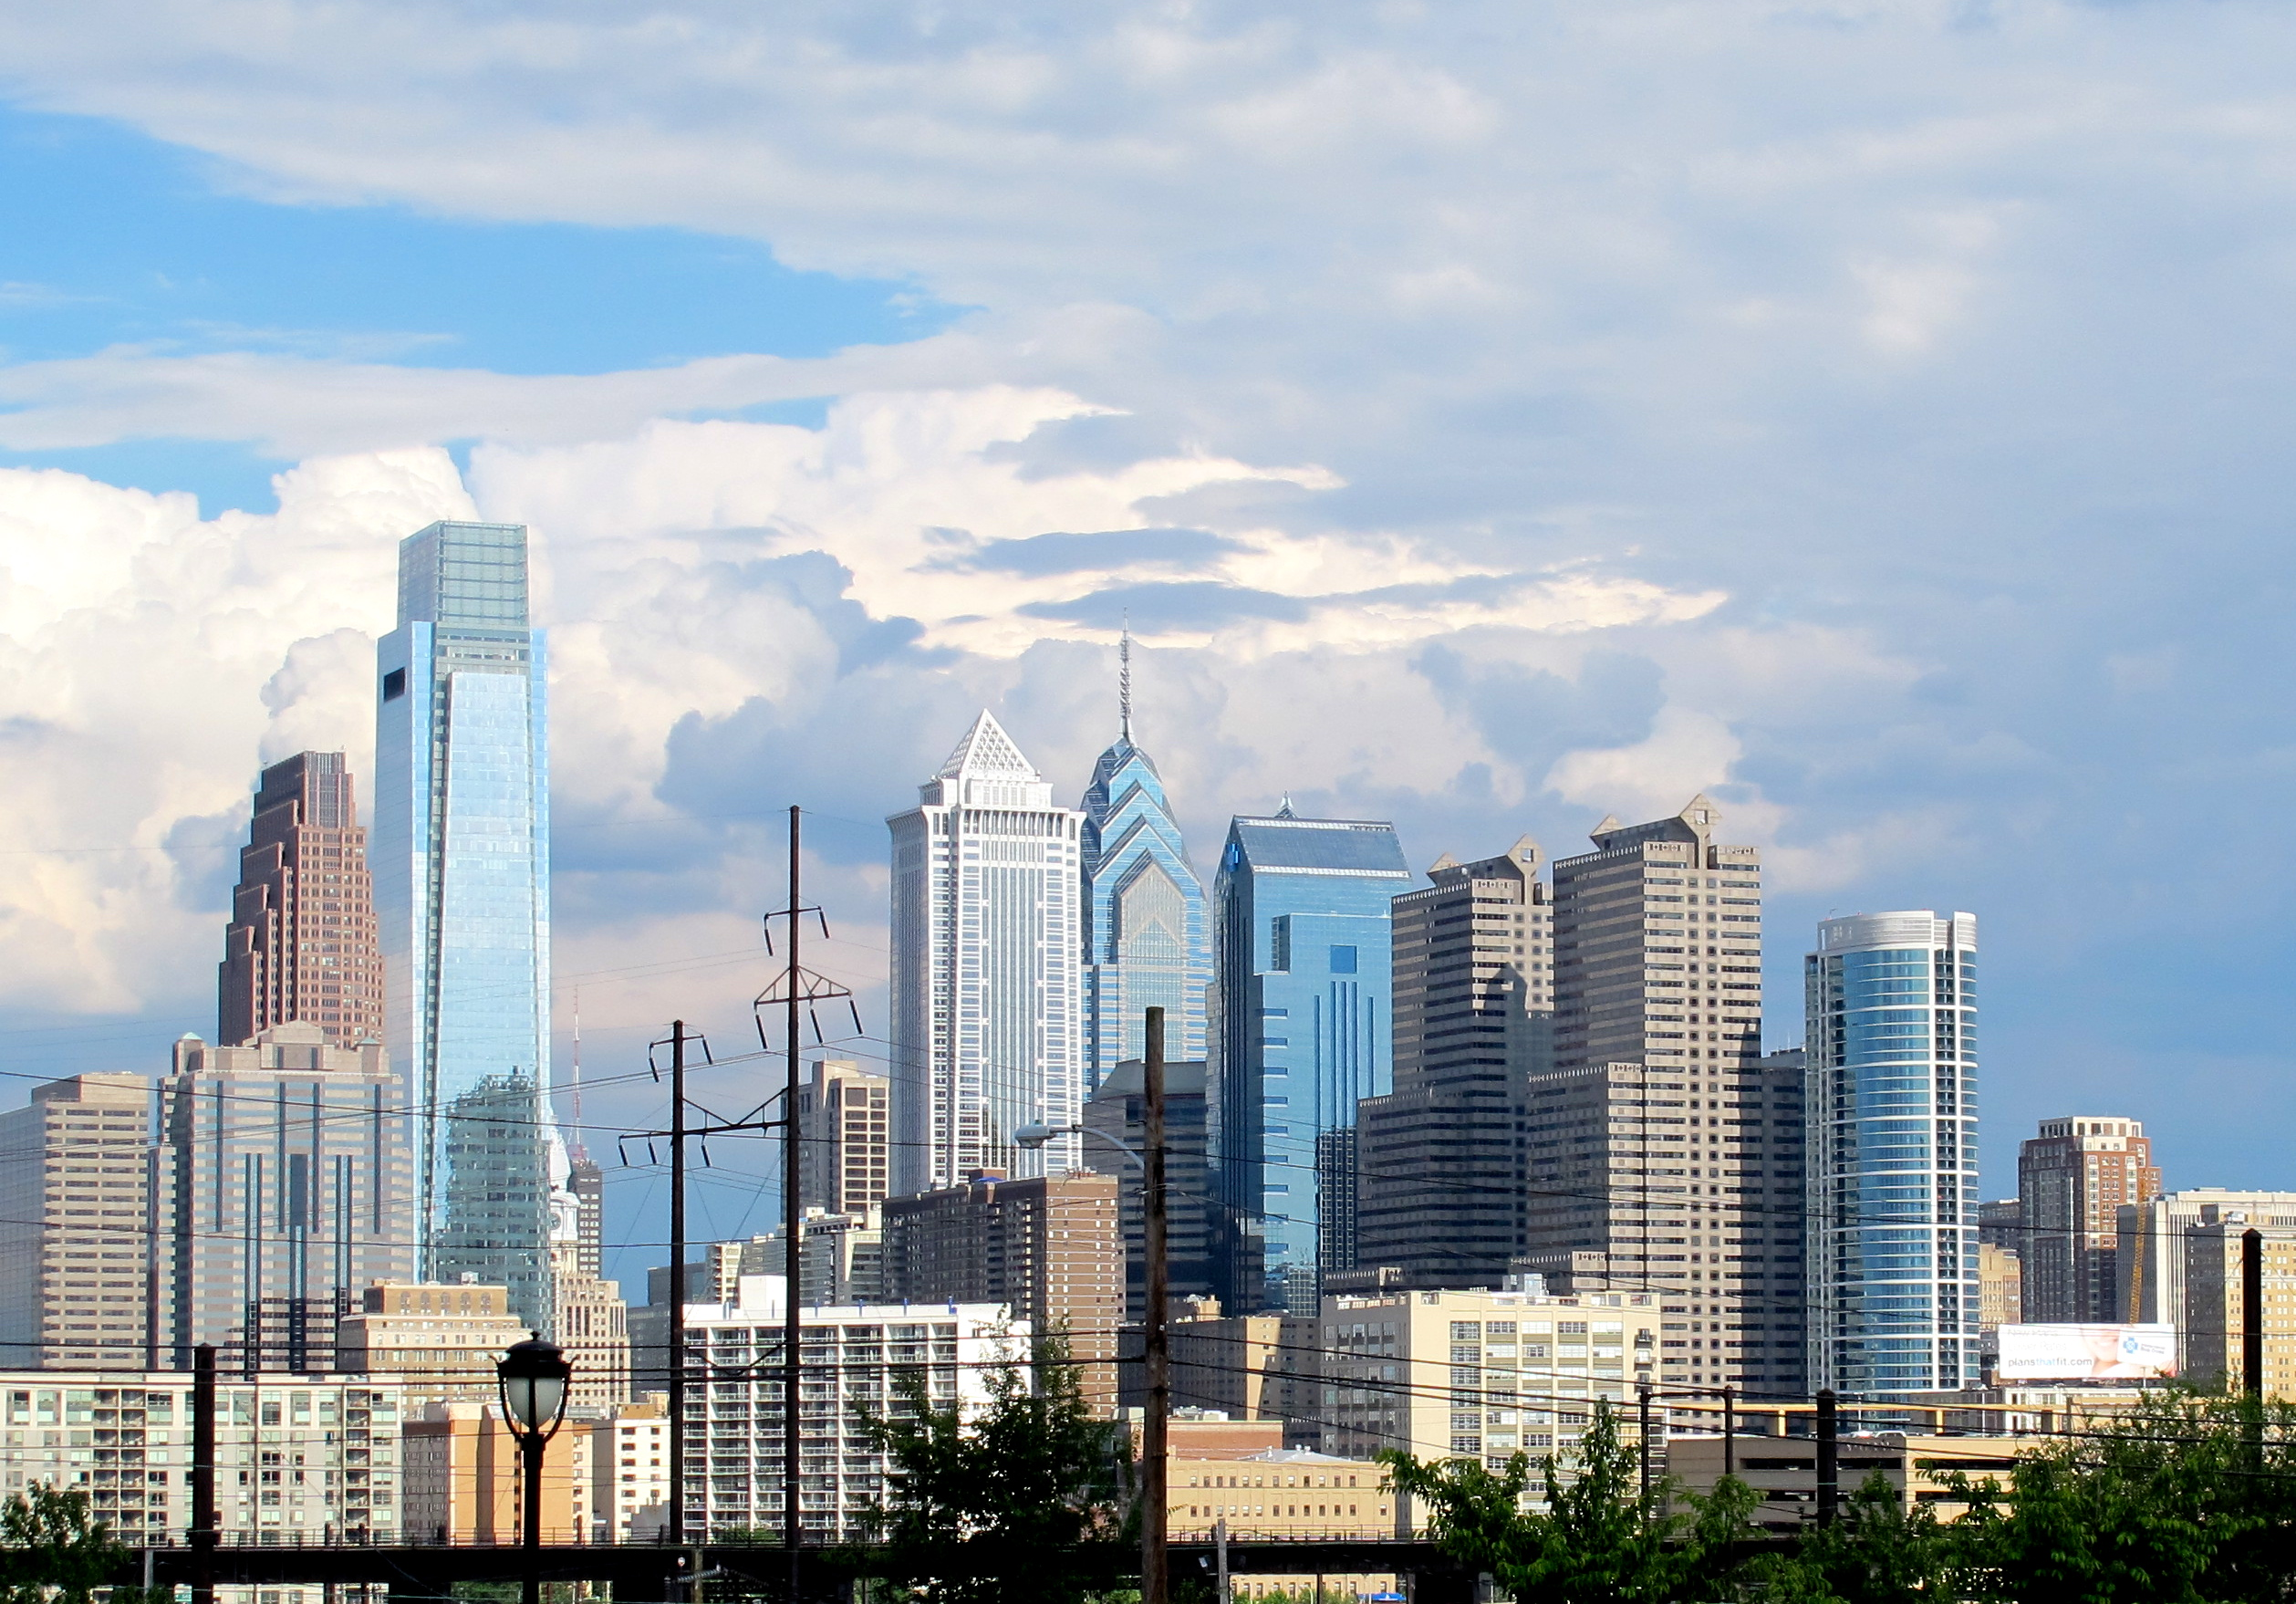 A skyline photo of Center City taken from West Philadelphia.